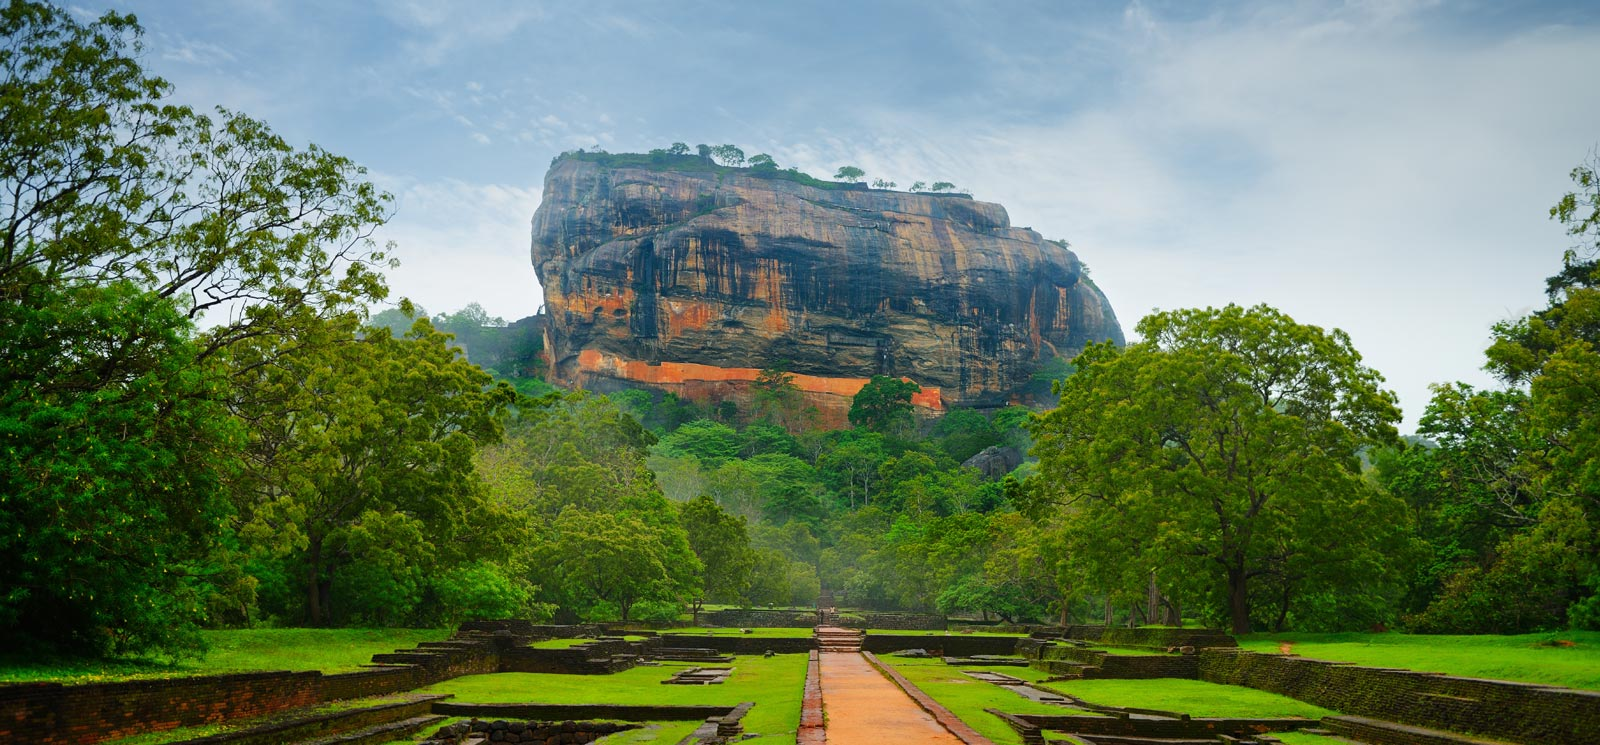 Sigiriya, the ancient rock fortress and water garden